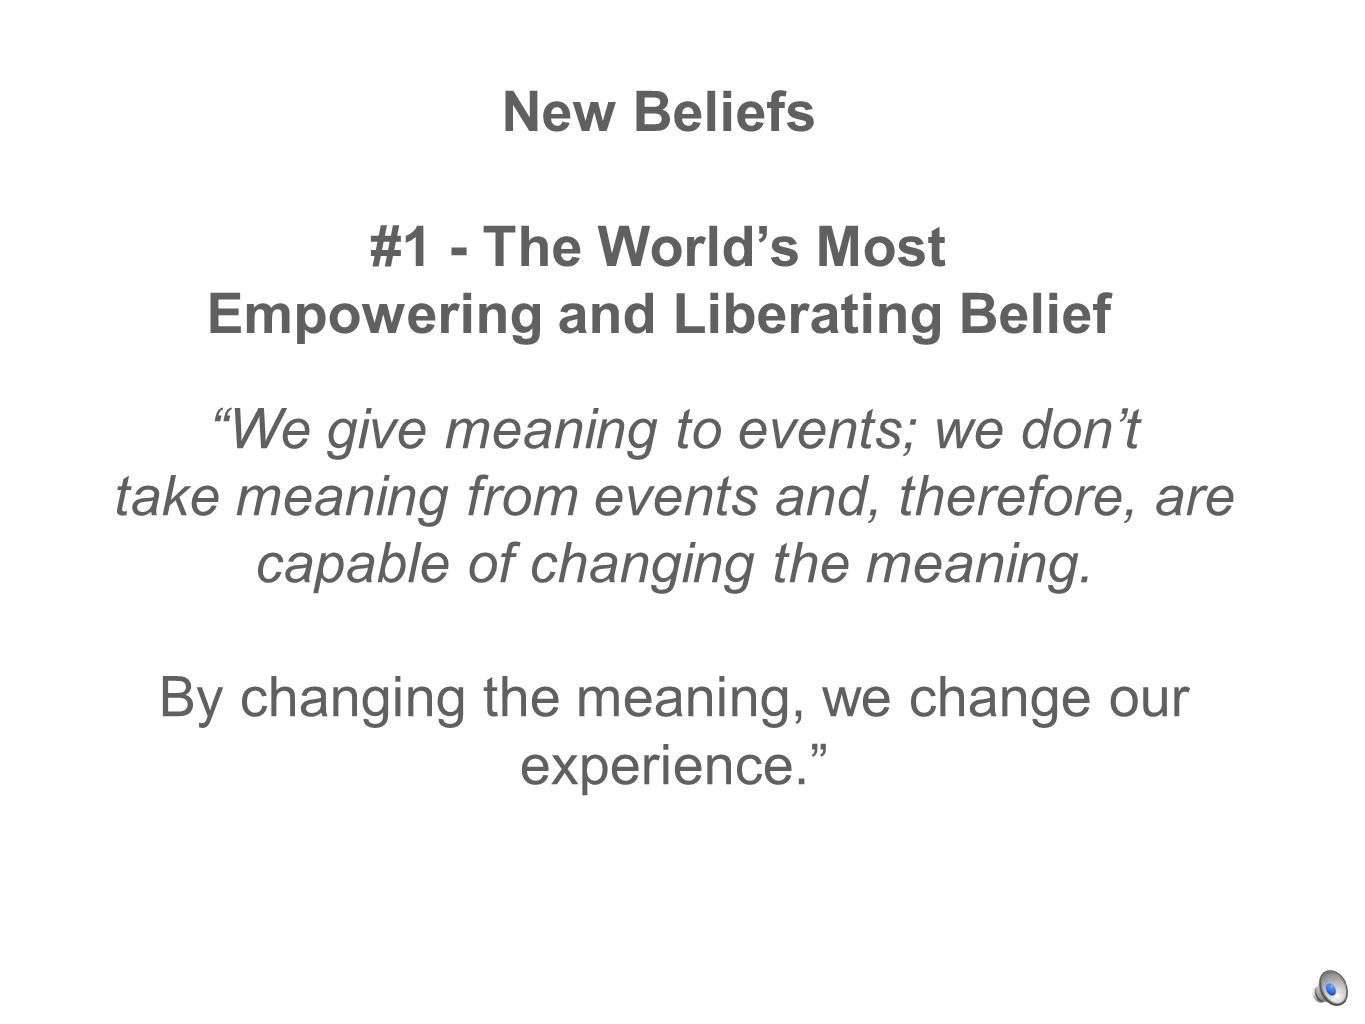 We give meaning to events; we dont take meaning from events and, therefore, are capable of changing the meaning.